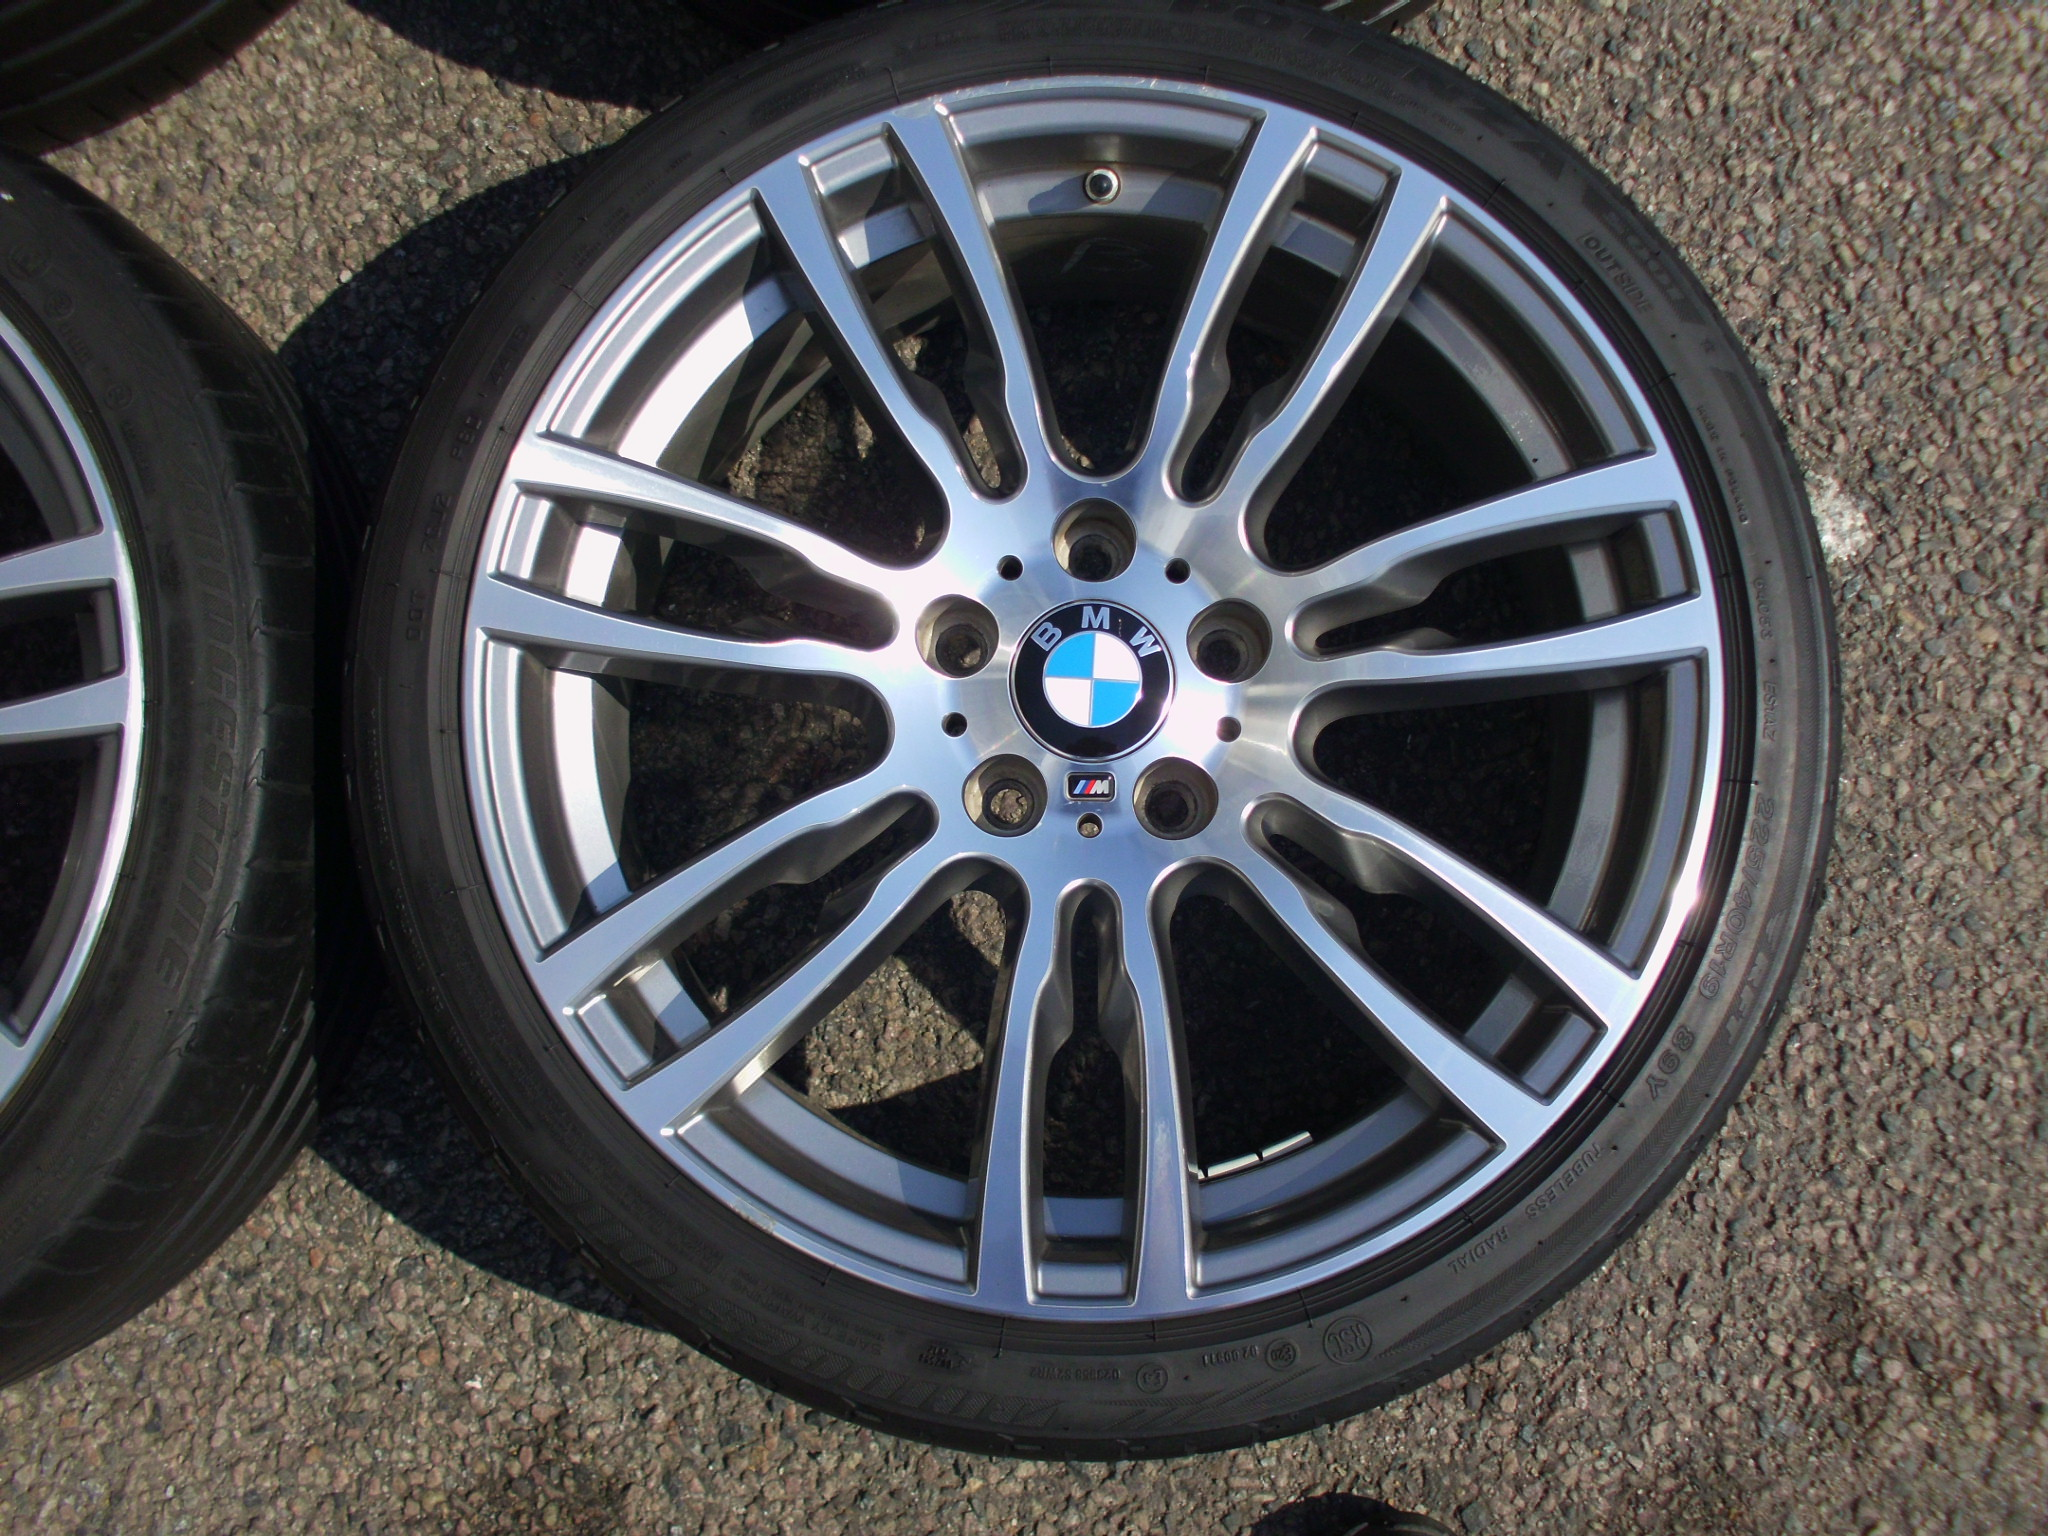 "USED 19"" GENUINE BMW STYLE 403 F30 M DOUBLE SPOKE ALLOY WHEELS , GOOD ORIGINAL CONDITION INC BRIDGESTONE RUNFLAT TYRES + TMPS"